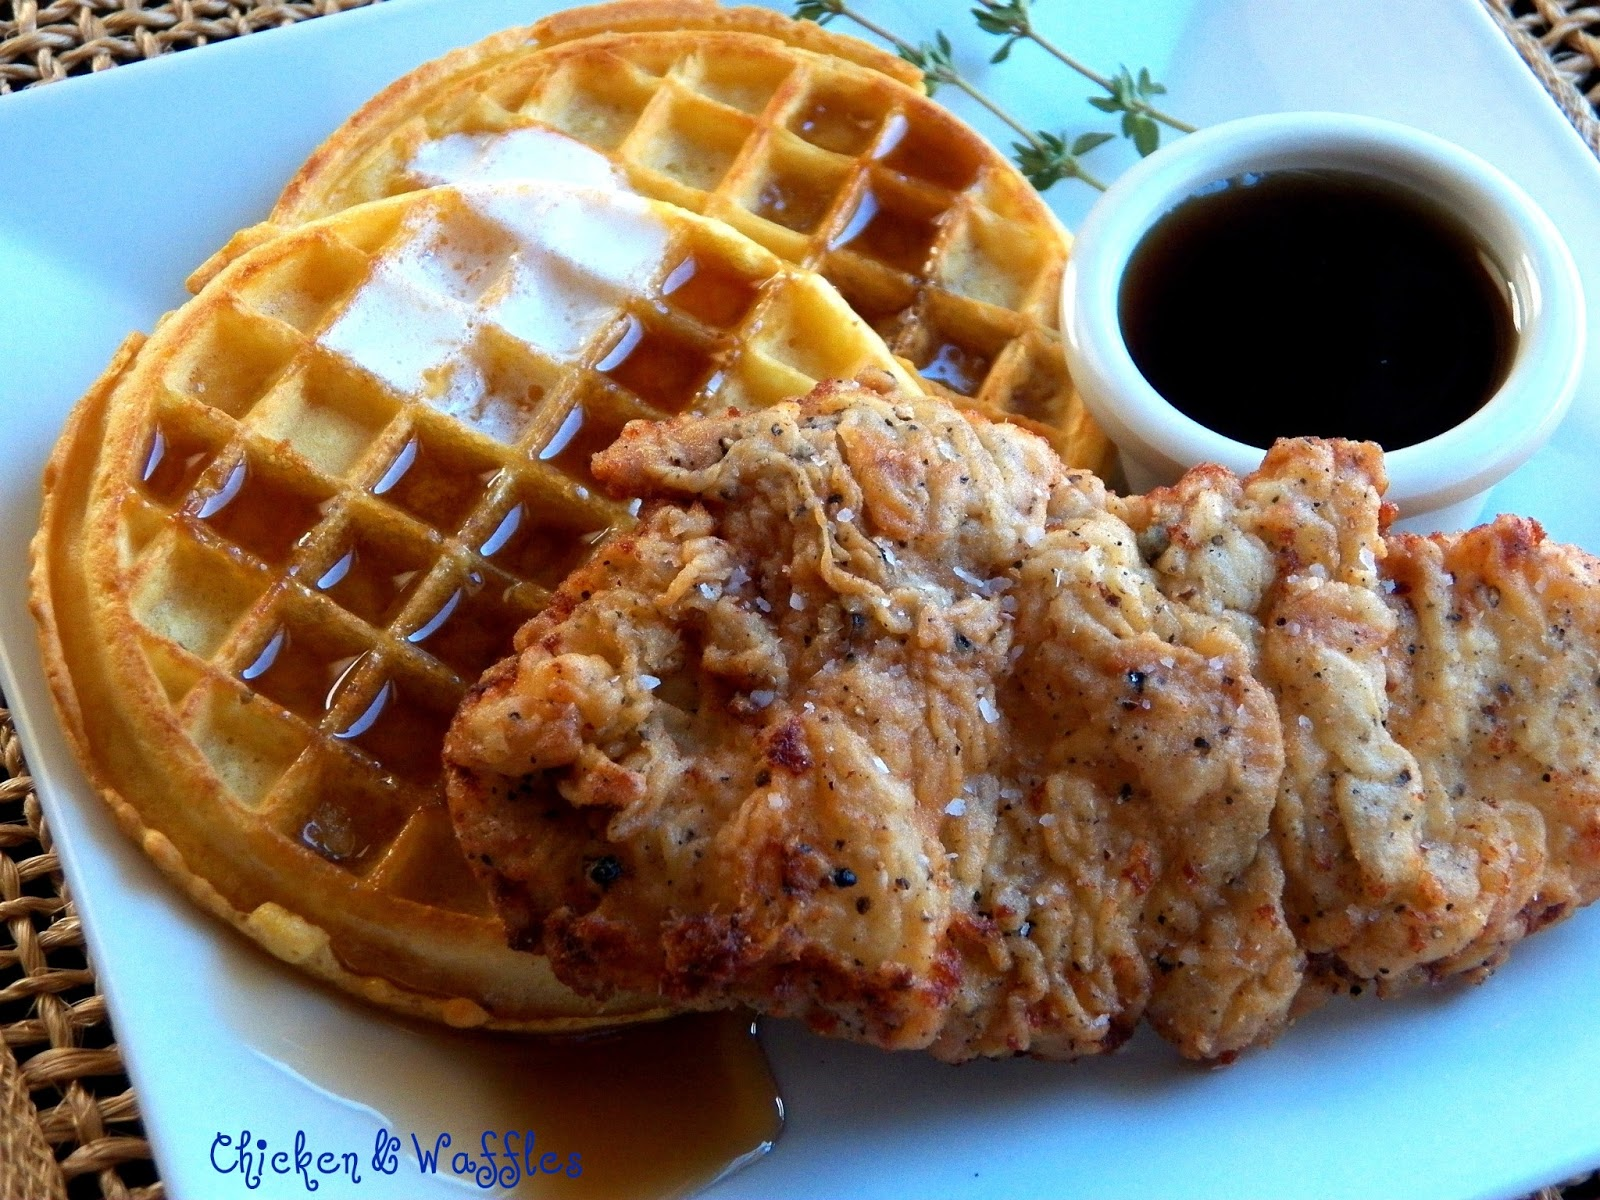 ... fried chicken and waffles at ad hoc in yountville ca ad hoc ad hoc